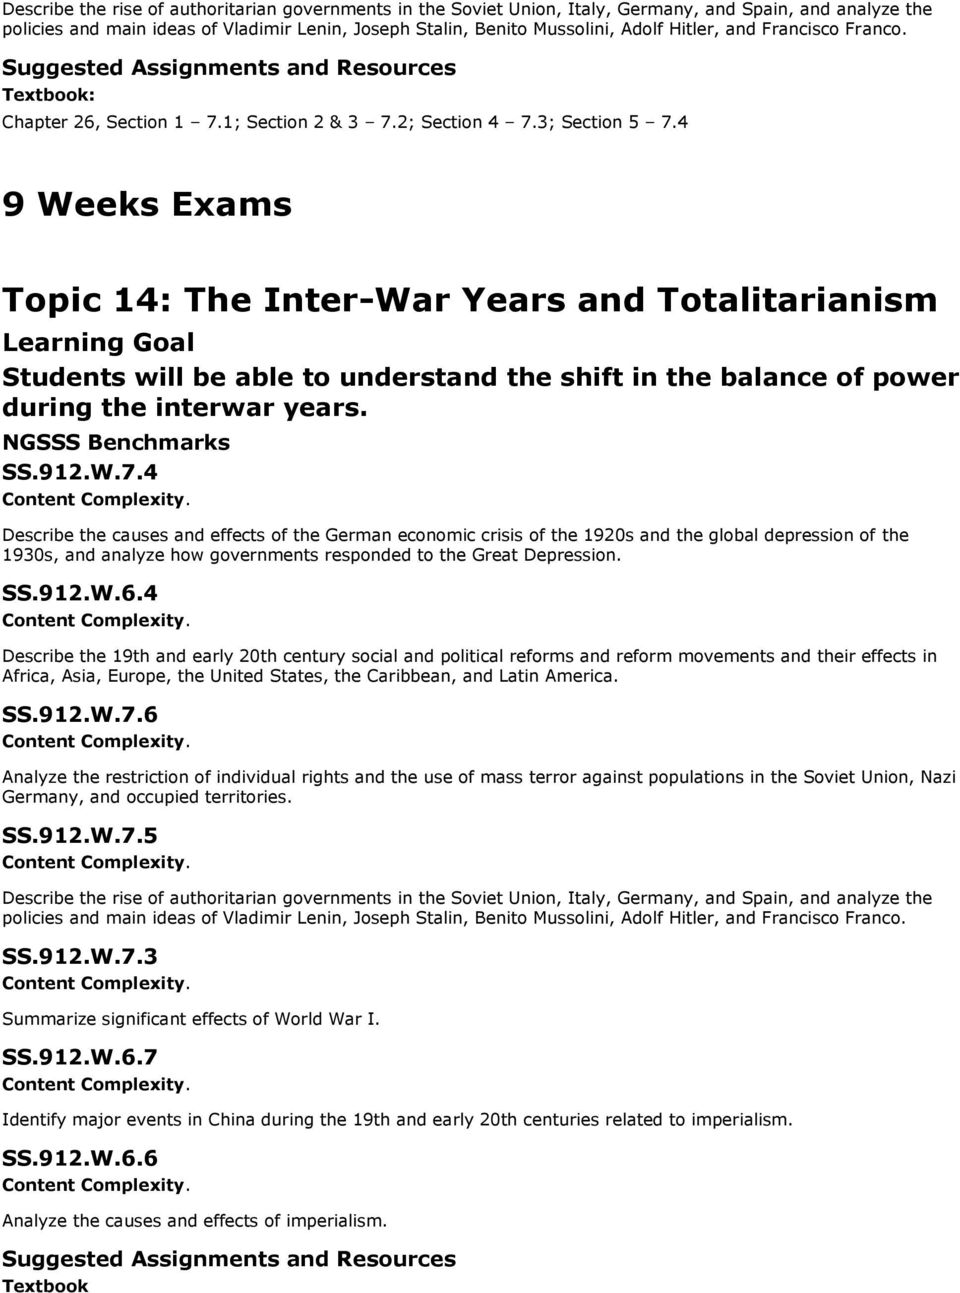 4 9 Weeks Exams Topic 14: The Inter-War Years and Totalitarianism Students will be able to understand the shift in the balance of power during the interwar years. SS.912.W.7.